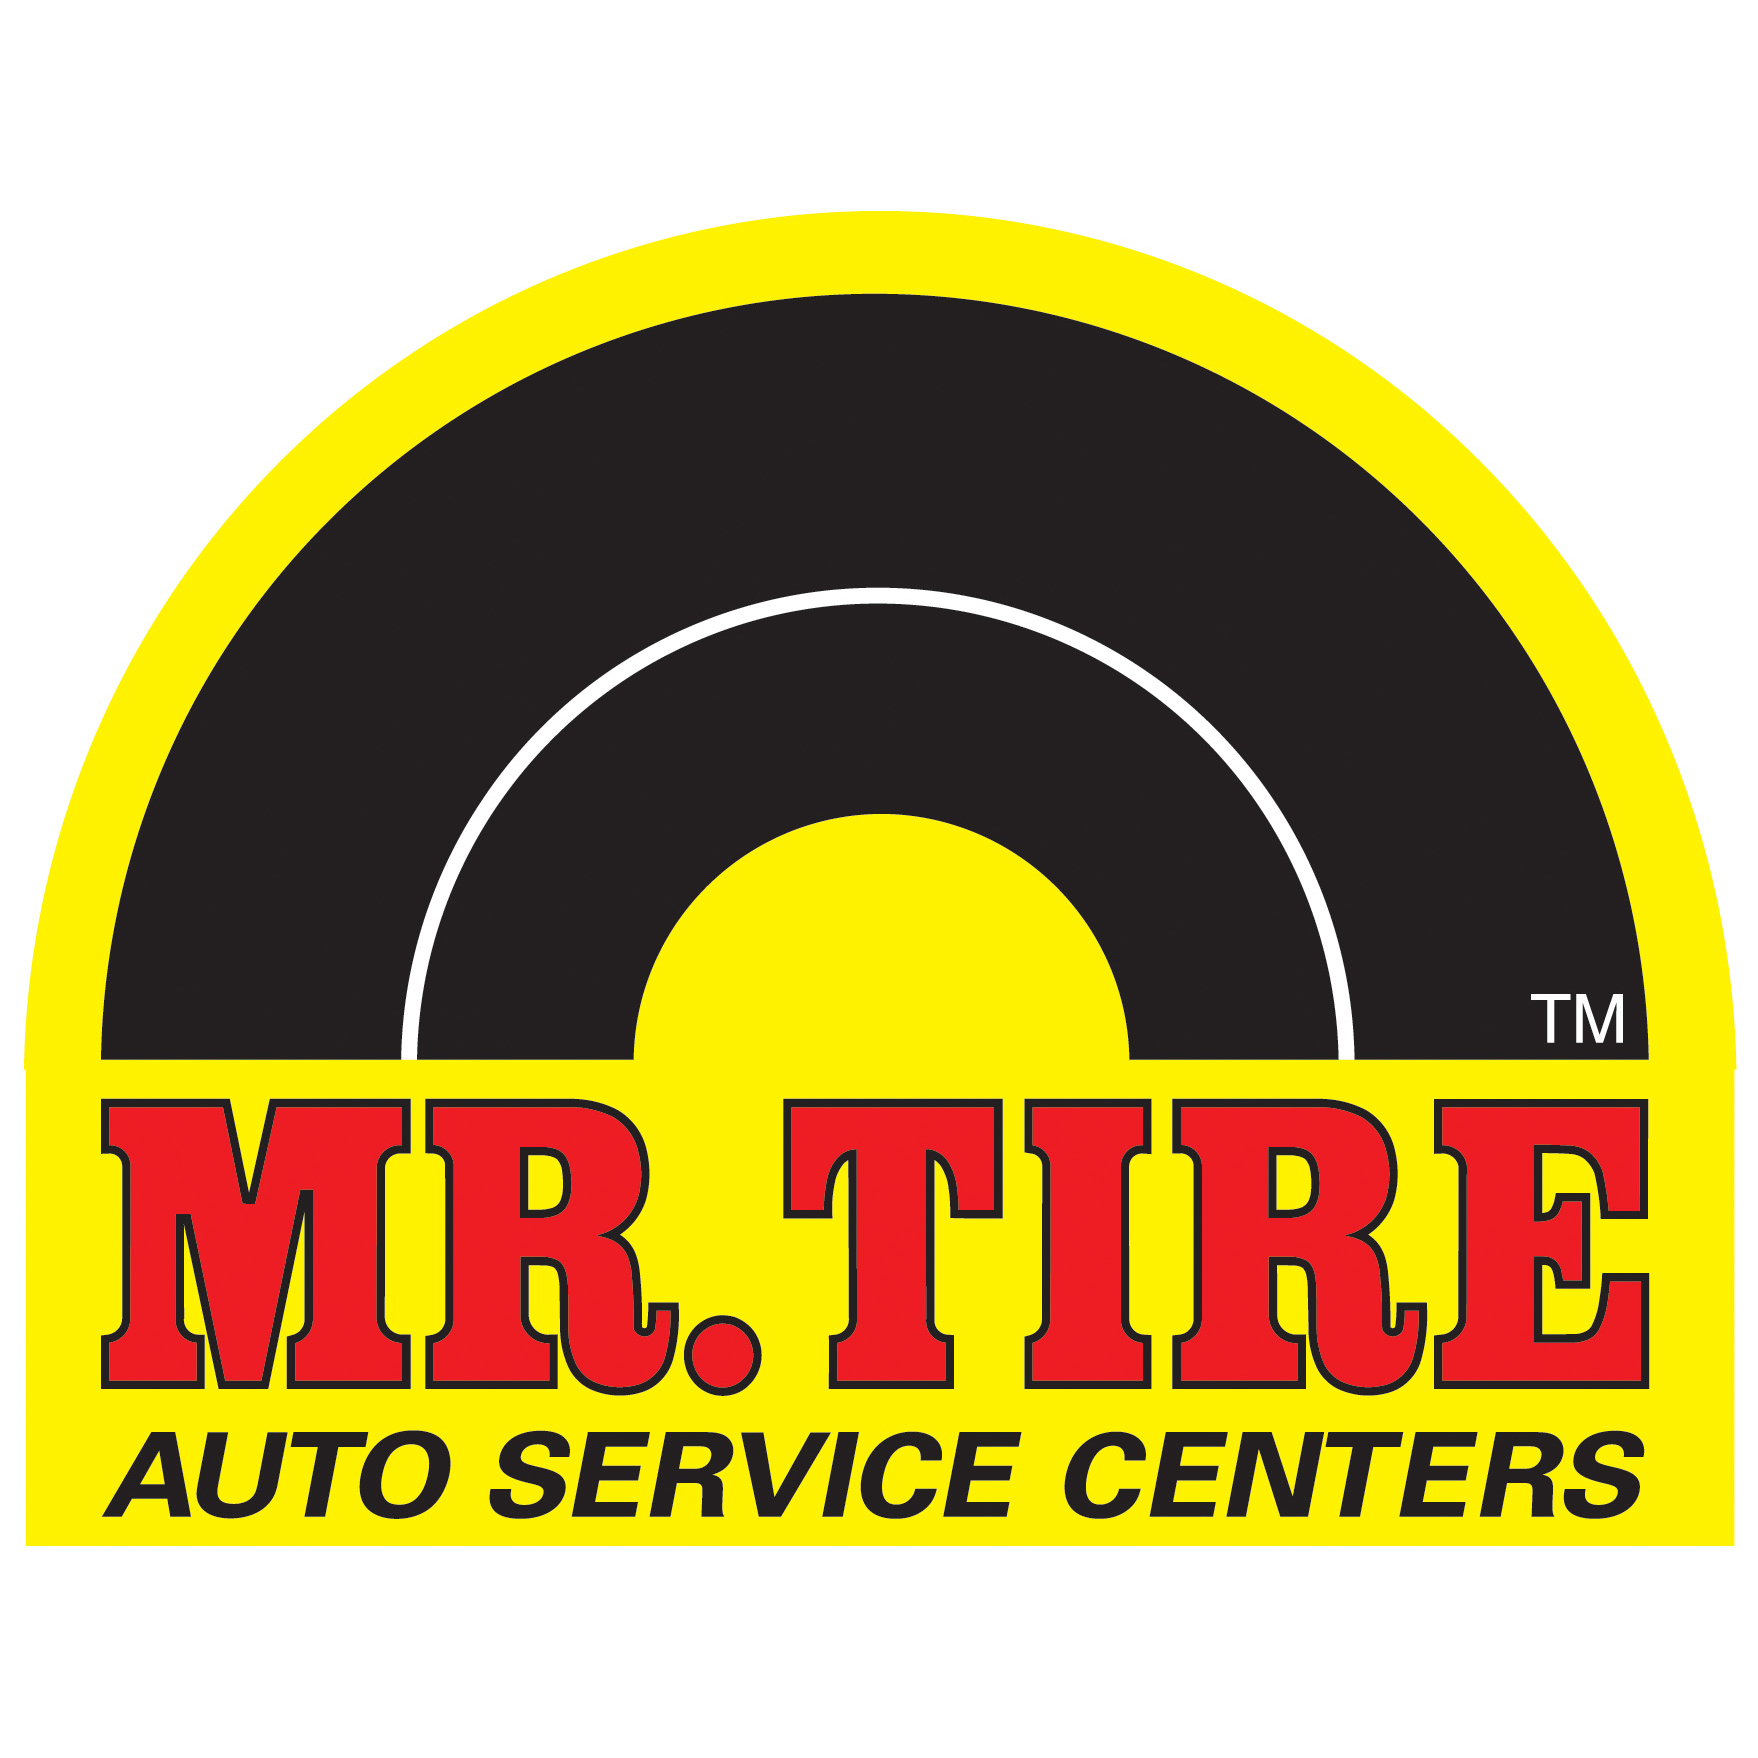 Mr Tire Auto Service Centers - Pittsburgh, PA - Tires & Wheel Alignment